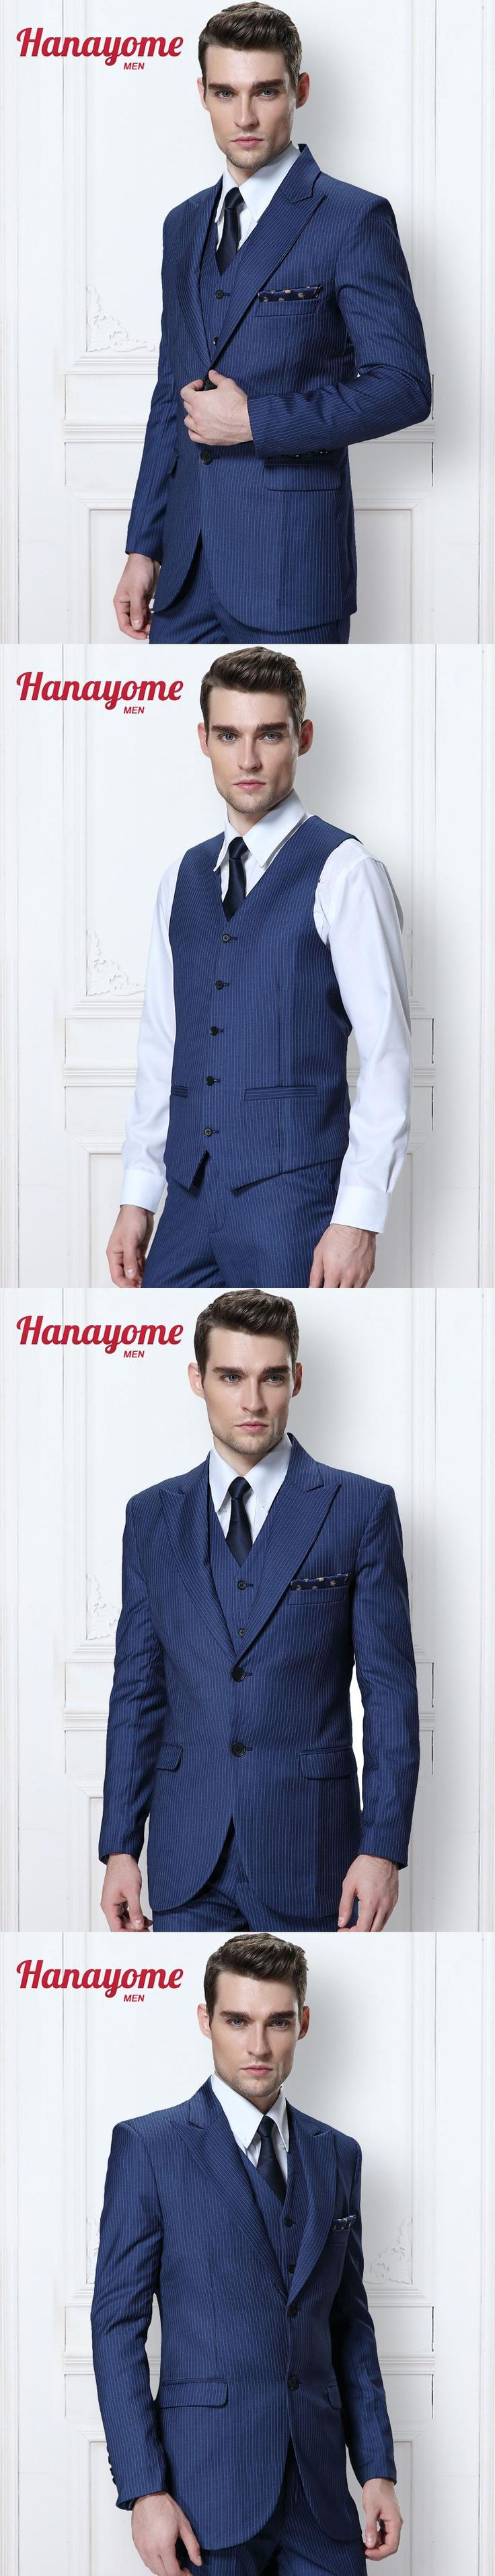 2017 Men Suit Sst Tailcoat Royal Blue Pants Men's 3 Pieces Striped V-Neck Wedding Party Jacket Suit Waistcoat & Pants D317